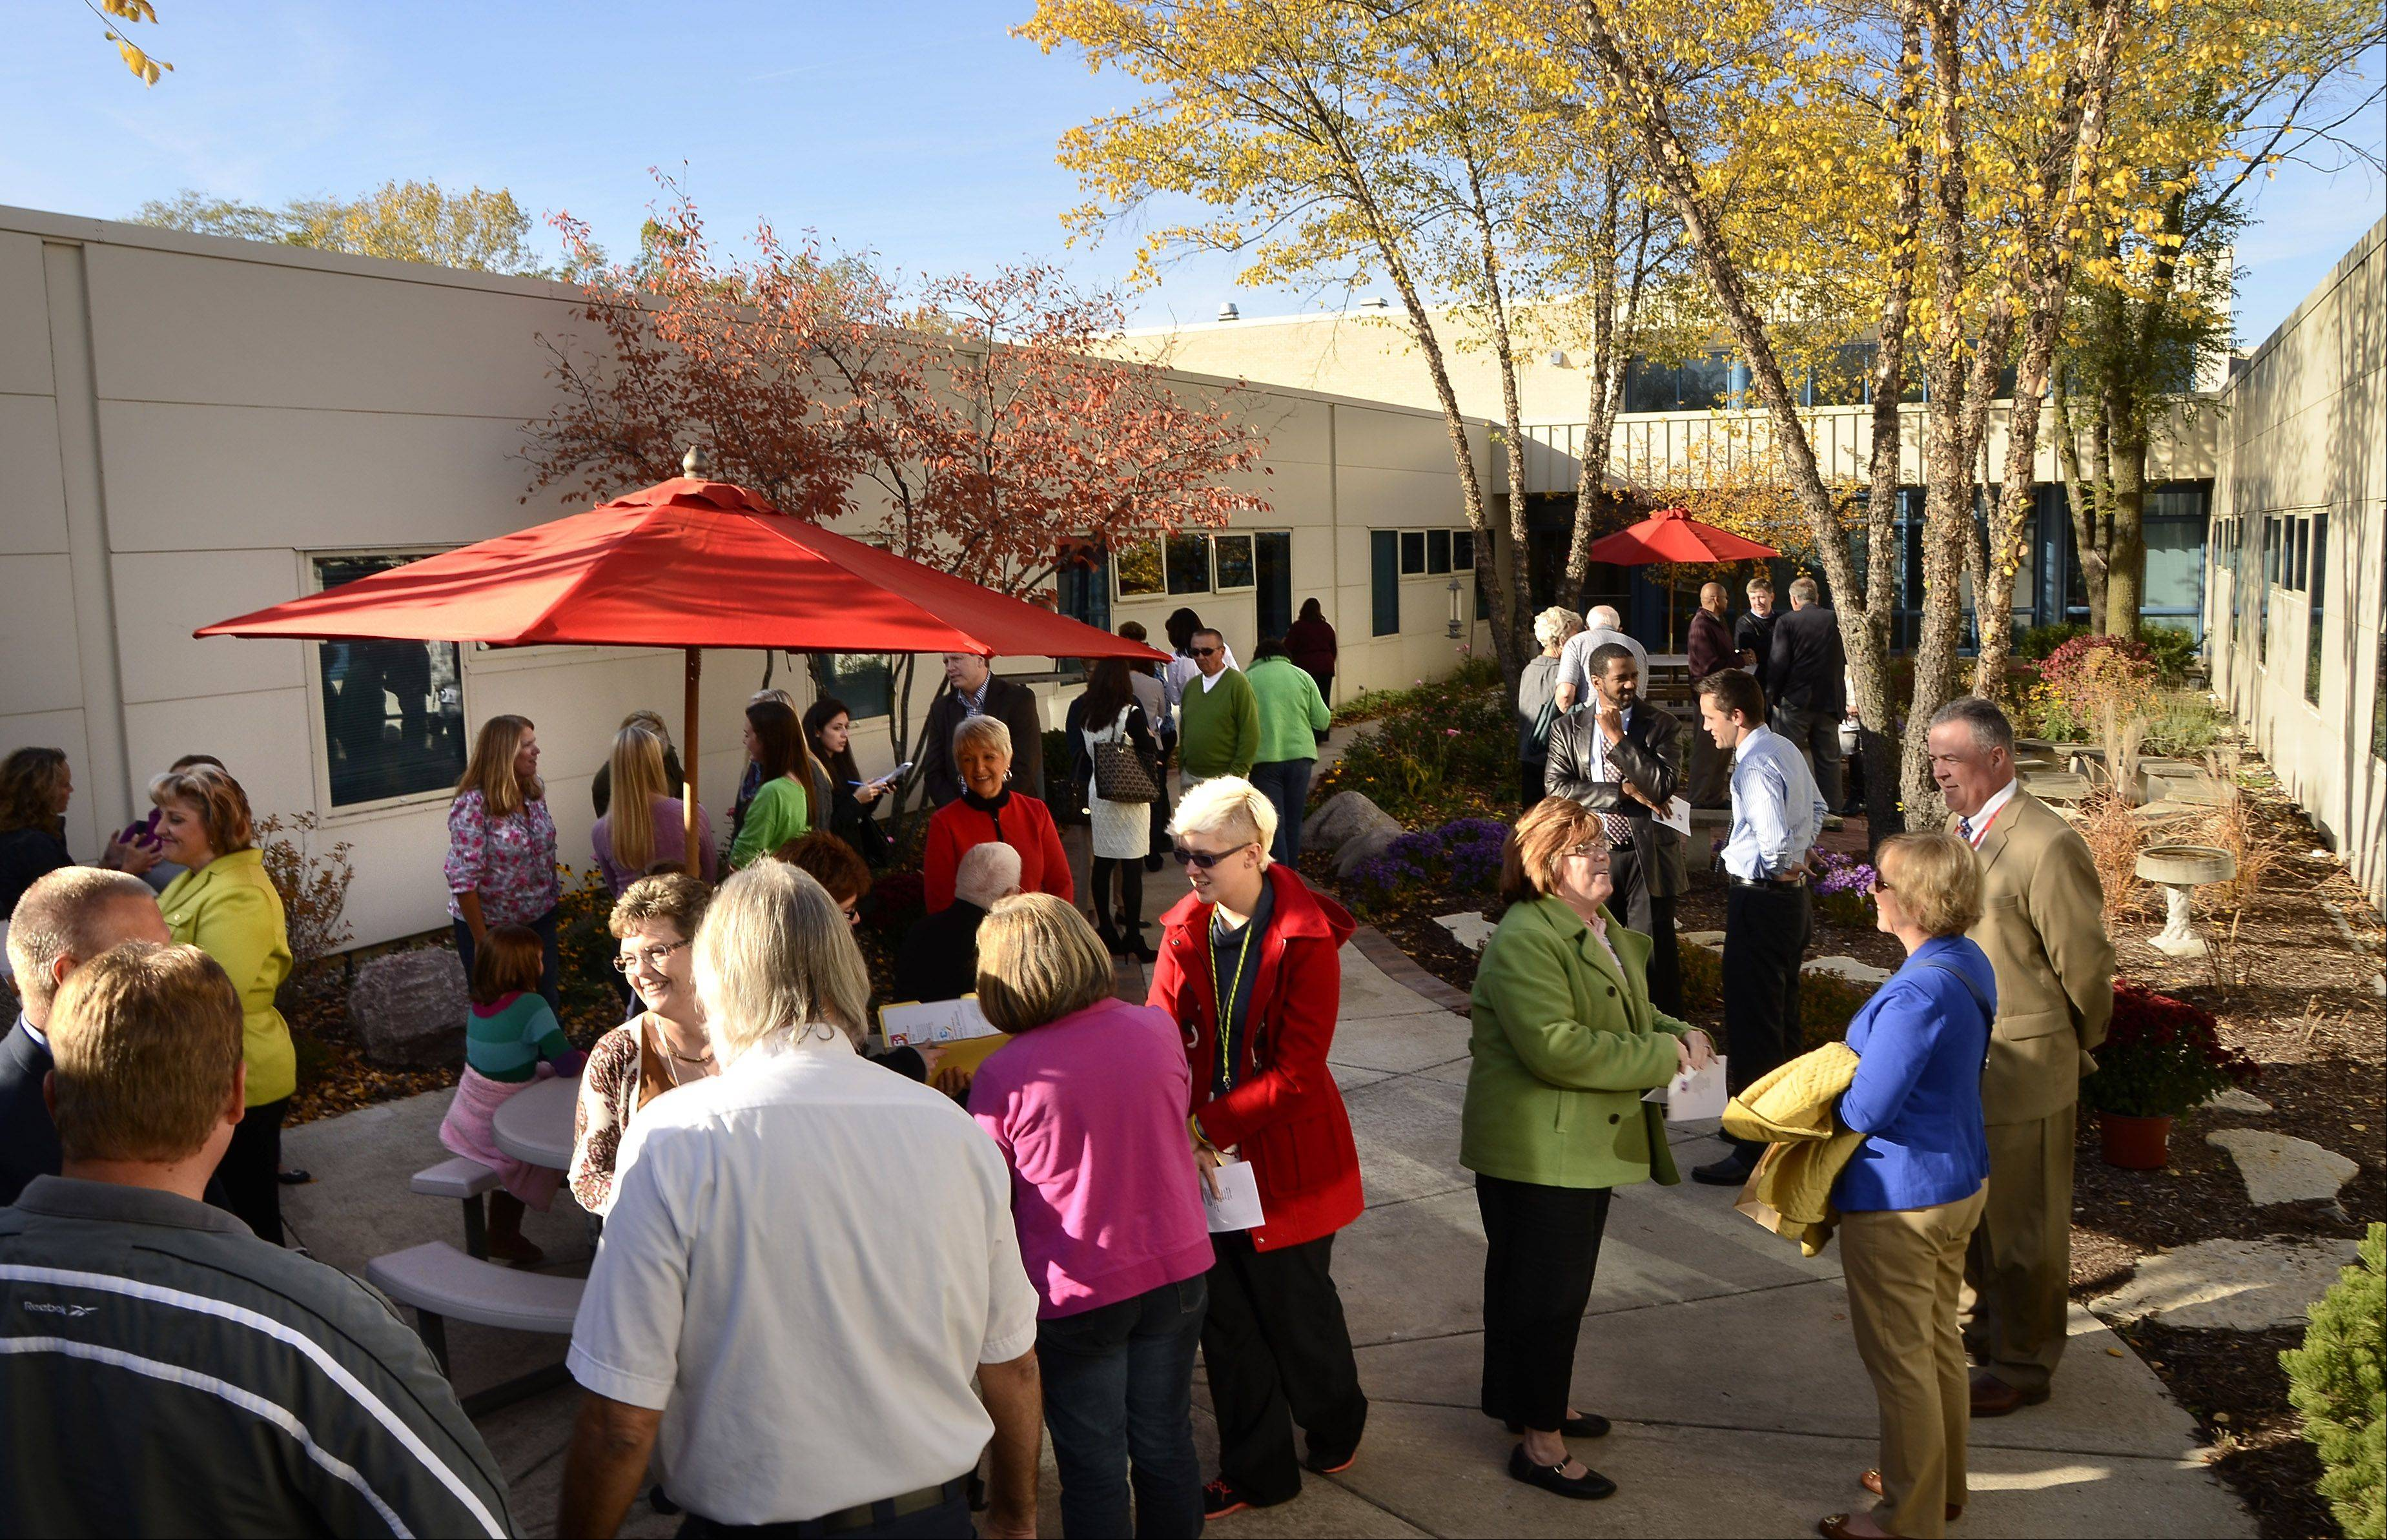 Family, friends and colleagues view the Dana Petersen Patio, dedicated in her memory Monday at Marion Jordan School in Palatine. Petersen, principal from 2001 to 2011, always wanted the school's courtyard to be an outdoor classroom. With donations from family and friends, her wish was granted.